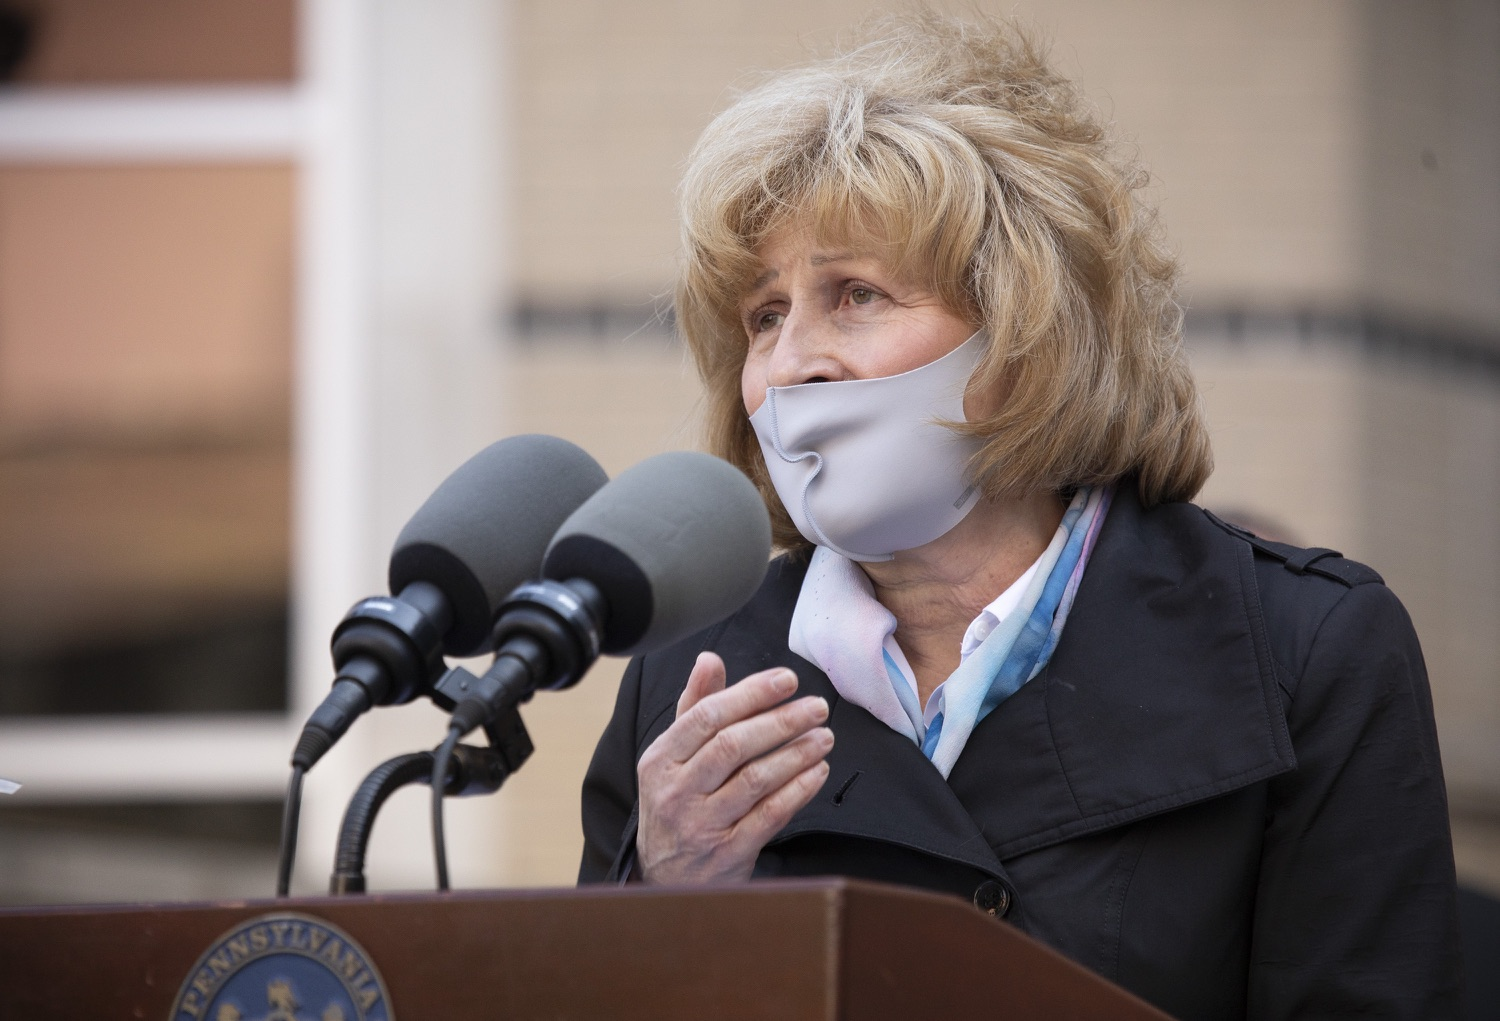 """<a href=""""https://filesource.wostreaming.net/commonwealthofpa/photo/18688_gov_vaccines_dz_009.jpg"""" target=""""_blank"""">⇣Download Photo<br></a>Senator Judy Schwank speaking with the press.  As Pennsylvania continues its accelerated COVID-19 vaccination plan, Pennsylvanians who are not able to leave their homes must be reached, and various state agencies and community groups are helping. Governor Tom Wolf visited Reading to talk about how the state and its partners are using various means to reach people not able to leave home to be vaccinated against COVID-19.  APRIL 26, 2021 - READING, PA"""